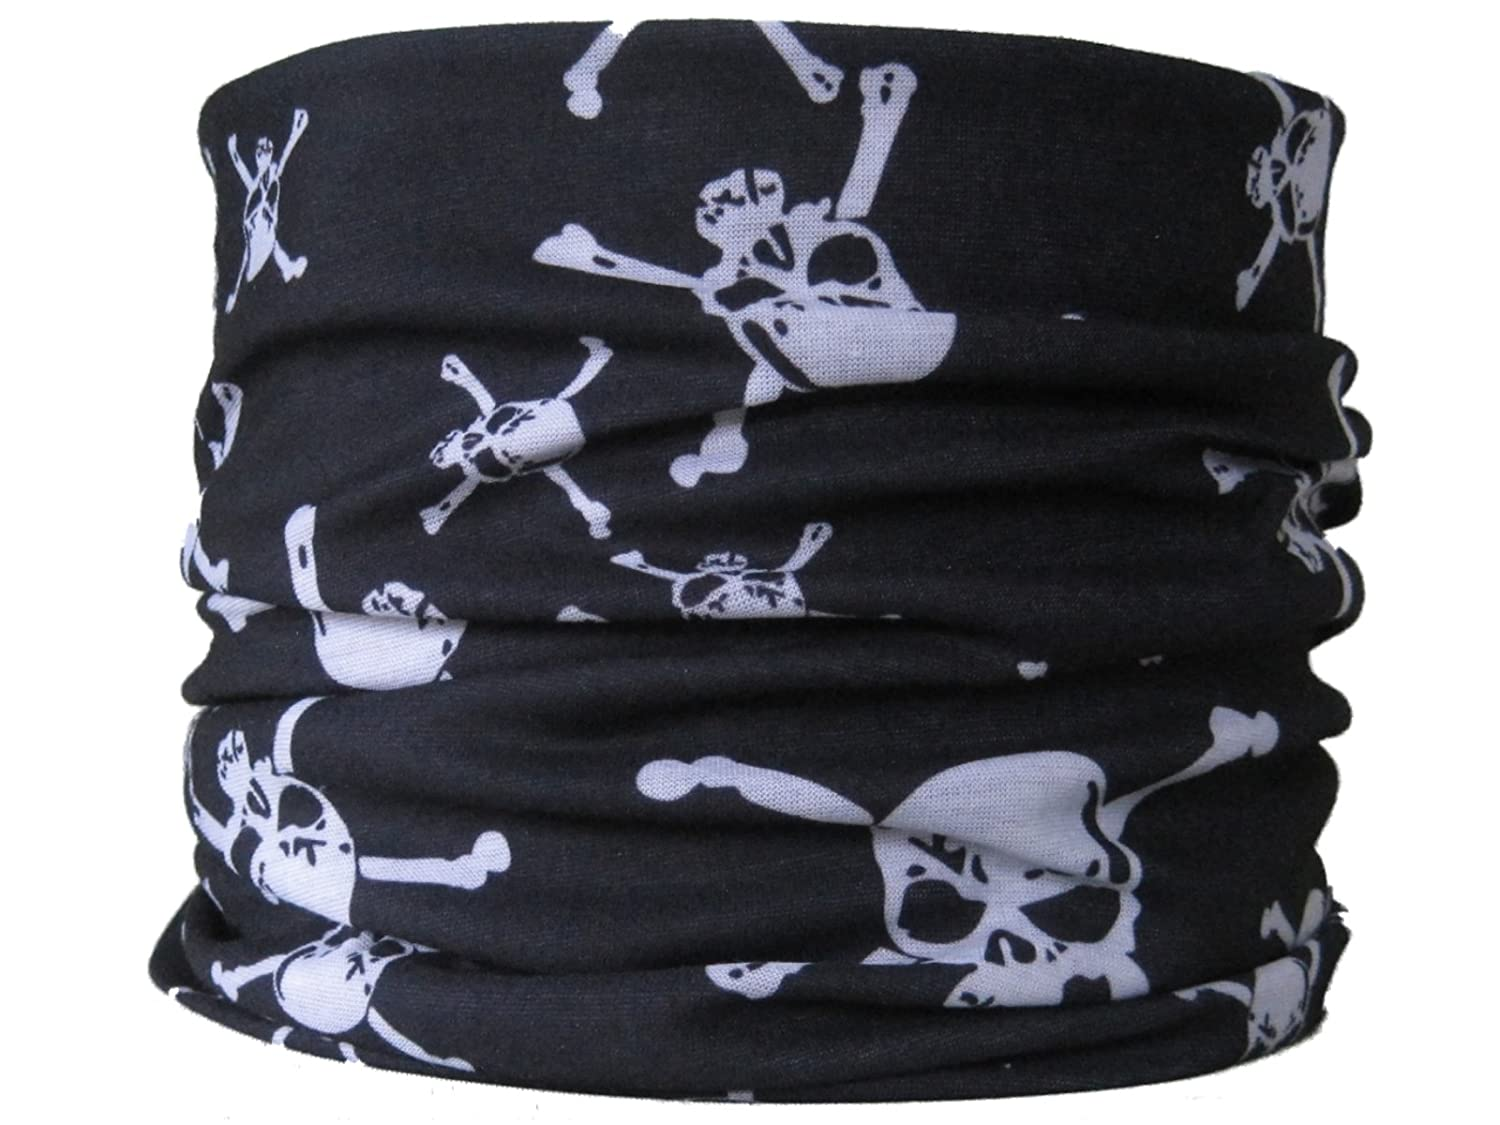 Multifunctional Tube Neck Scarf with Skull and Crossbones Pirate Design, Black & White Multifunctional Headwear